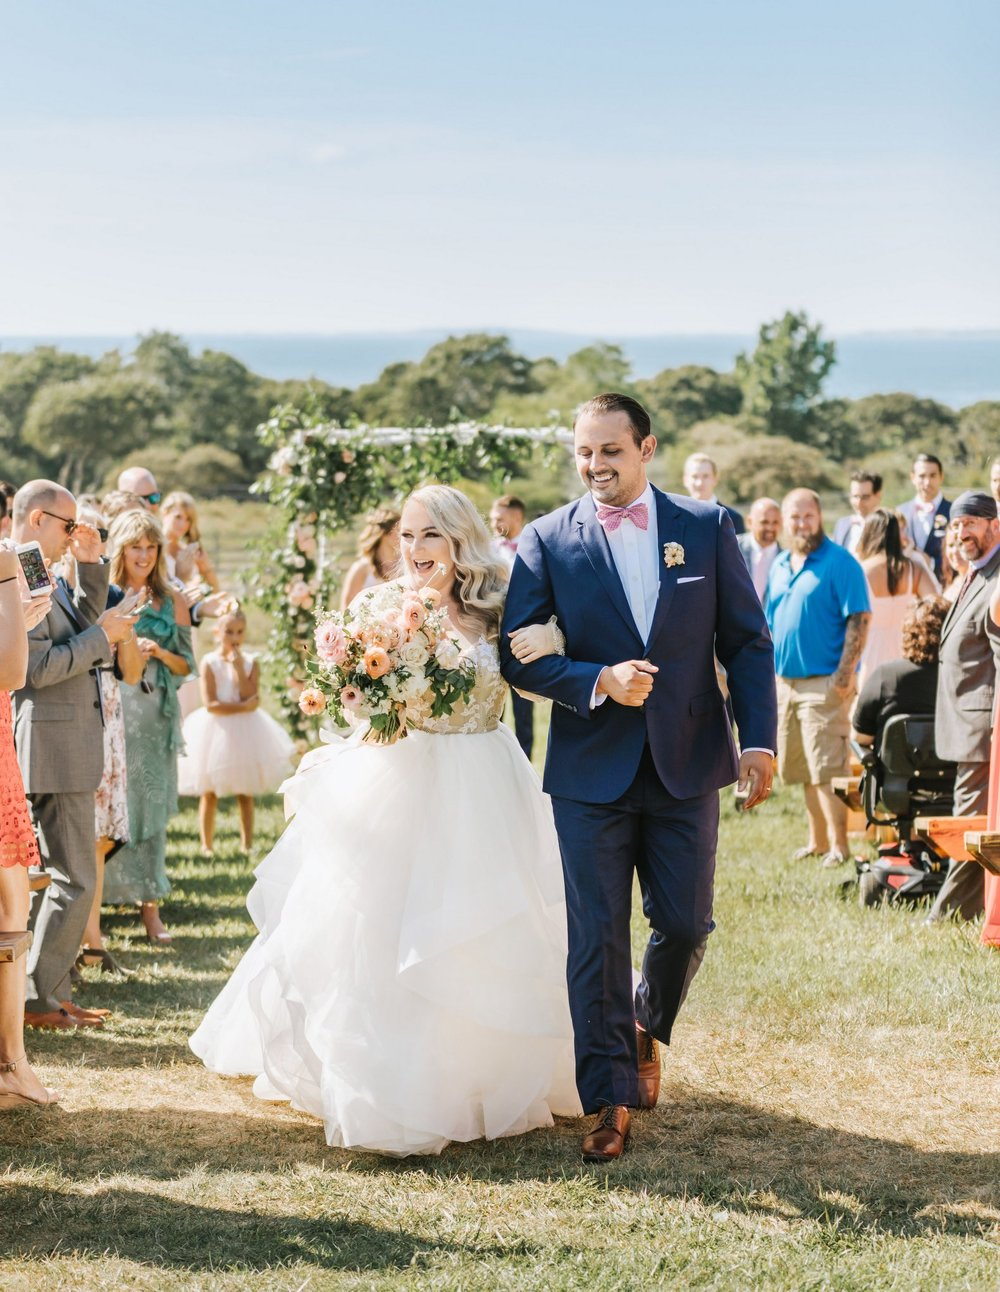 Marthas-Vineyard-Wedding-Photographer-Beach-Plum-Inn-23.jpg